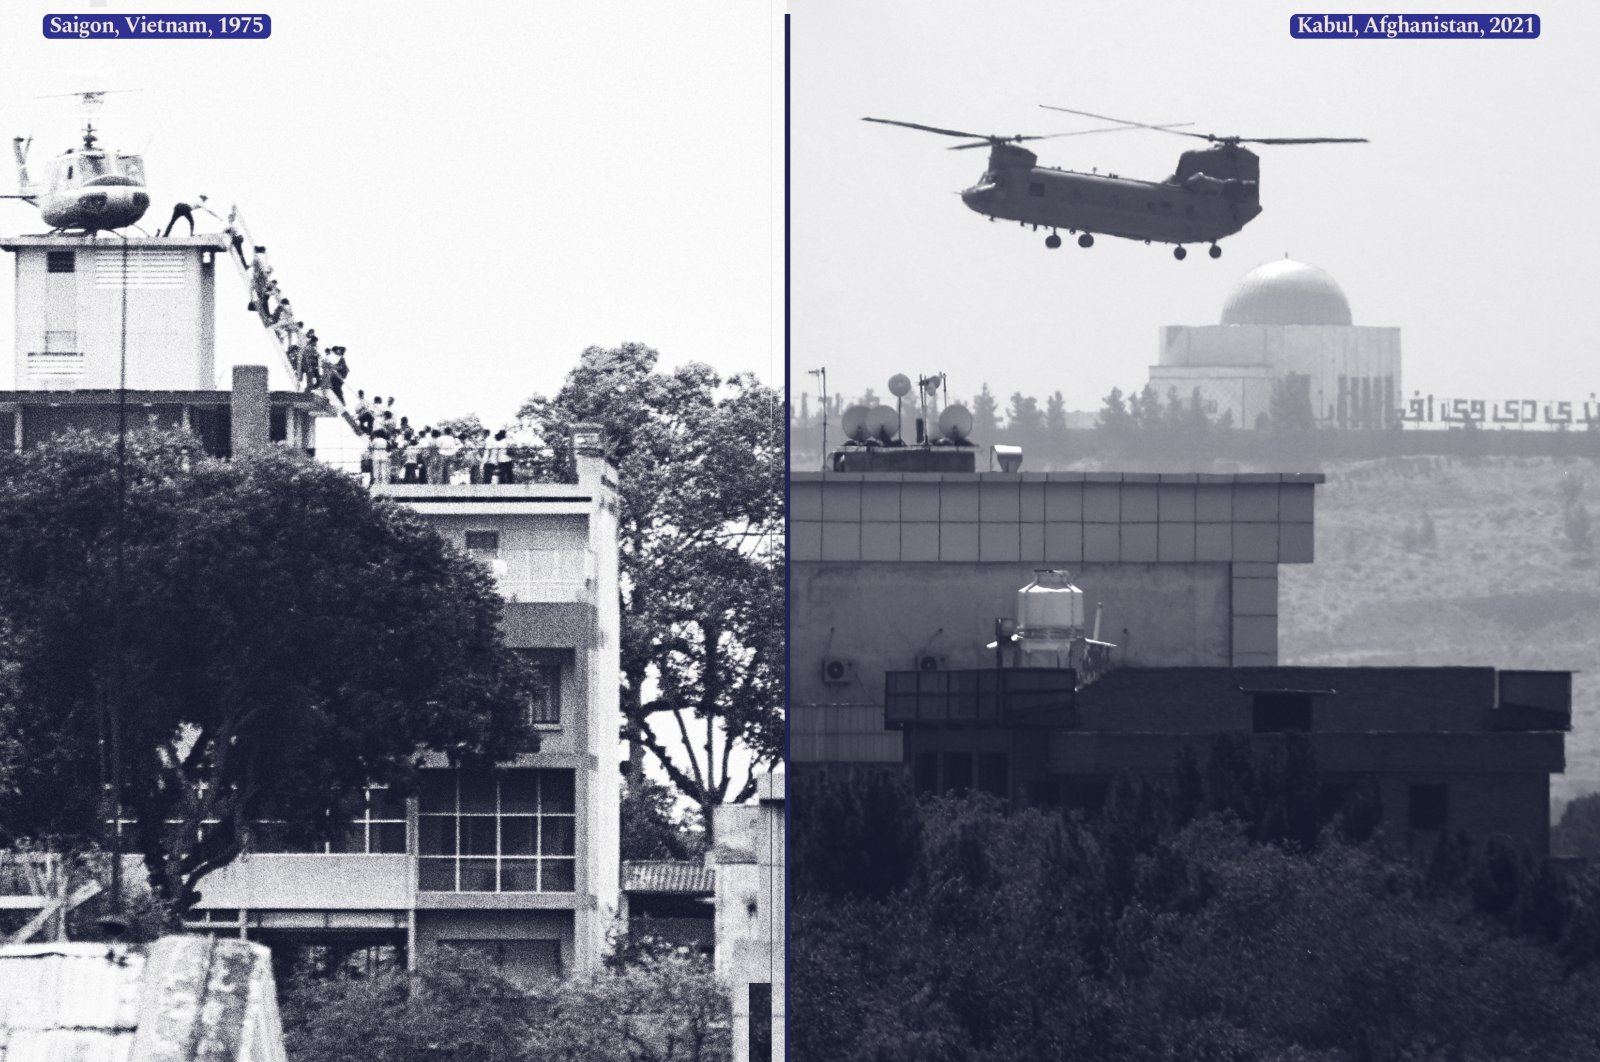 A combination picture of a CIA employee (most likely O.B. Harnage) helping Vietnamese evacuees onto an Air America helicopter from the top of 22 Gia Long Street, a half mile from the U.S. Embassy, Saigon, Vietnam, April, 1975 and a U.S. Chinook helicopter flying over the U.S. Embassy in Kabul, Afghanistan, Aug. 15, 2021.